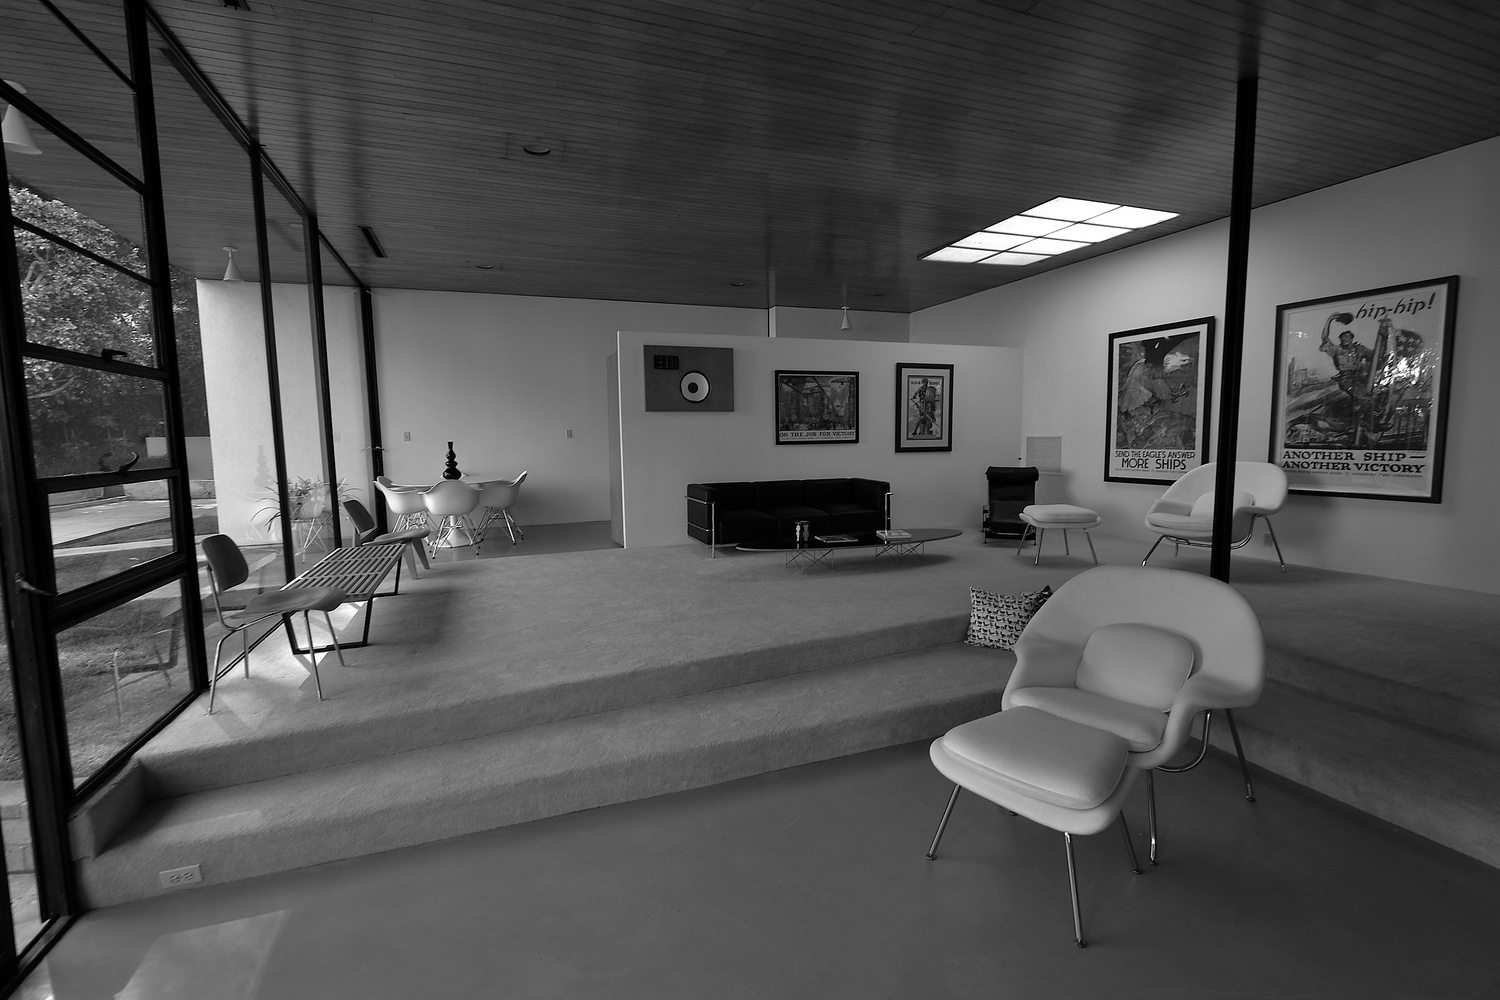 Gallery of A Virtual Look Into Eames and Saarinen's Case